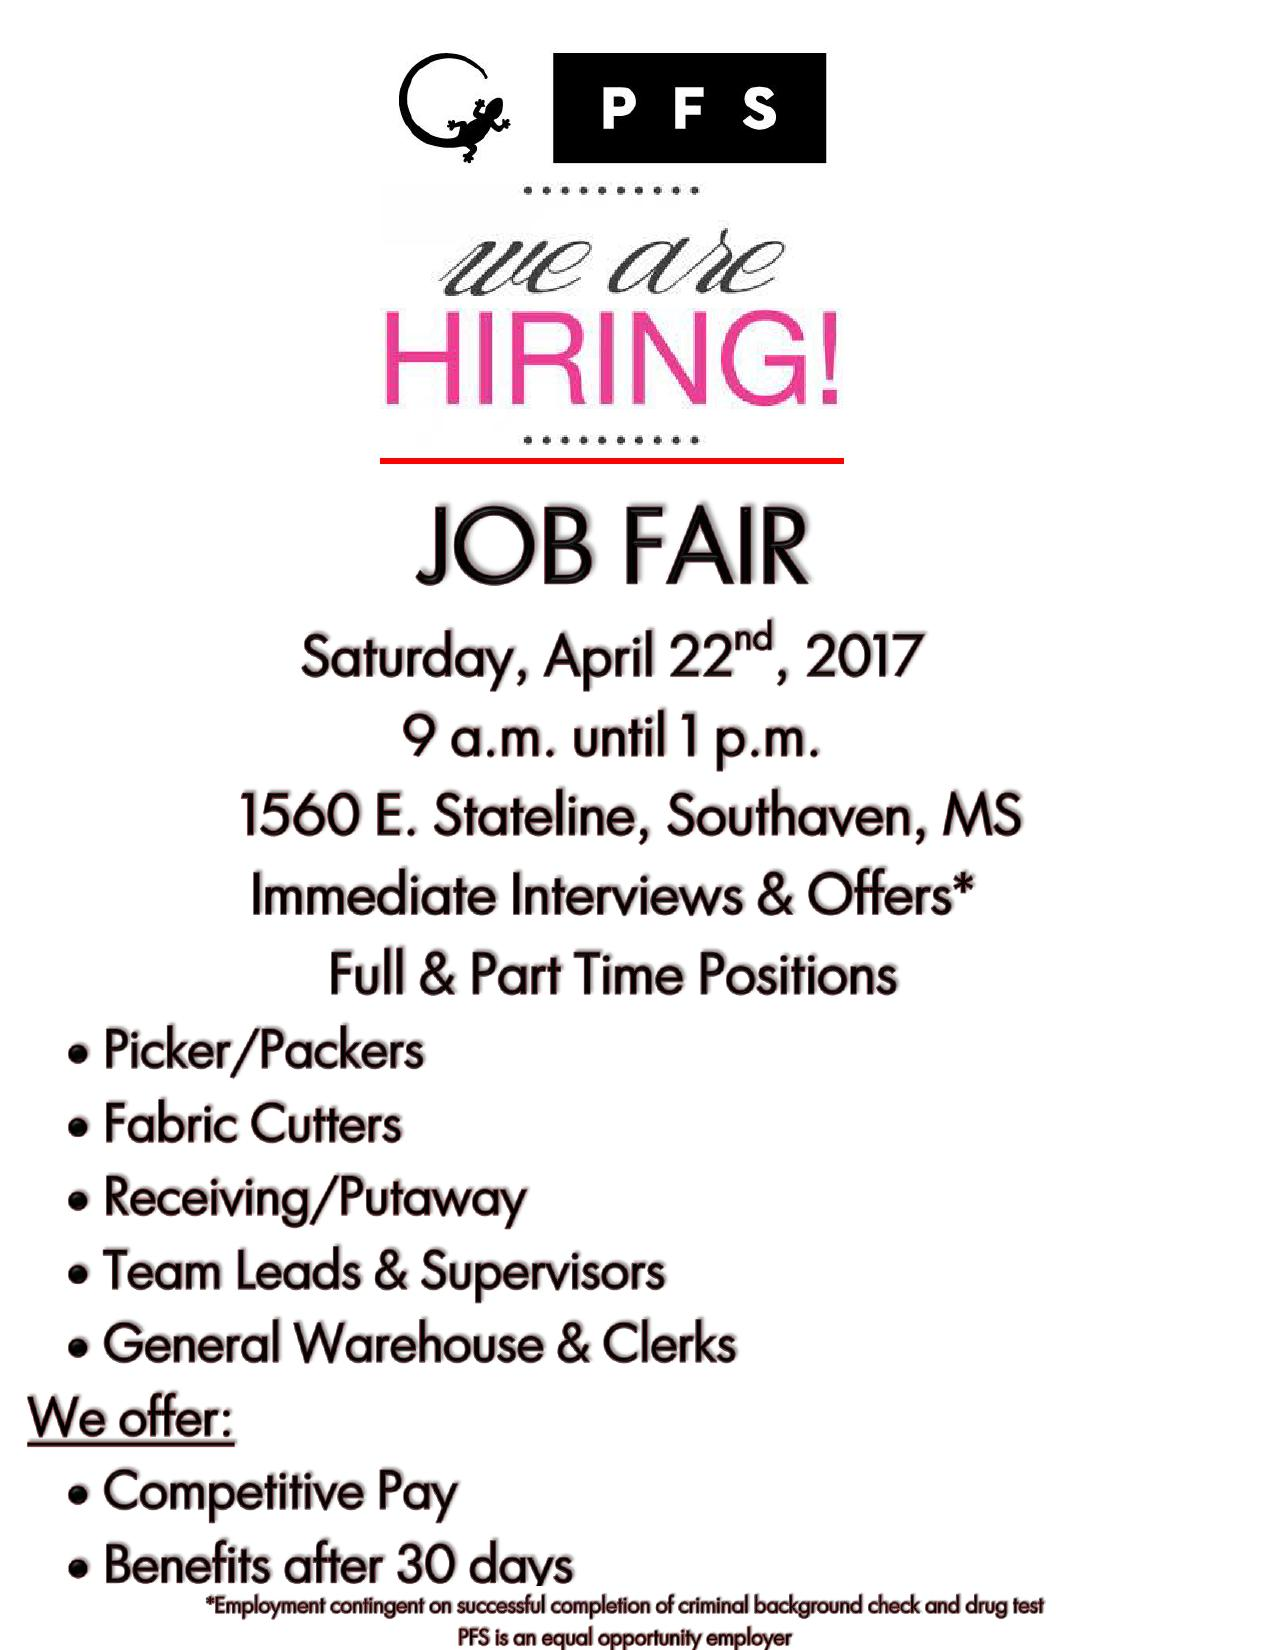 Job Fair Flyer MS 2017 PFS_1